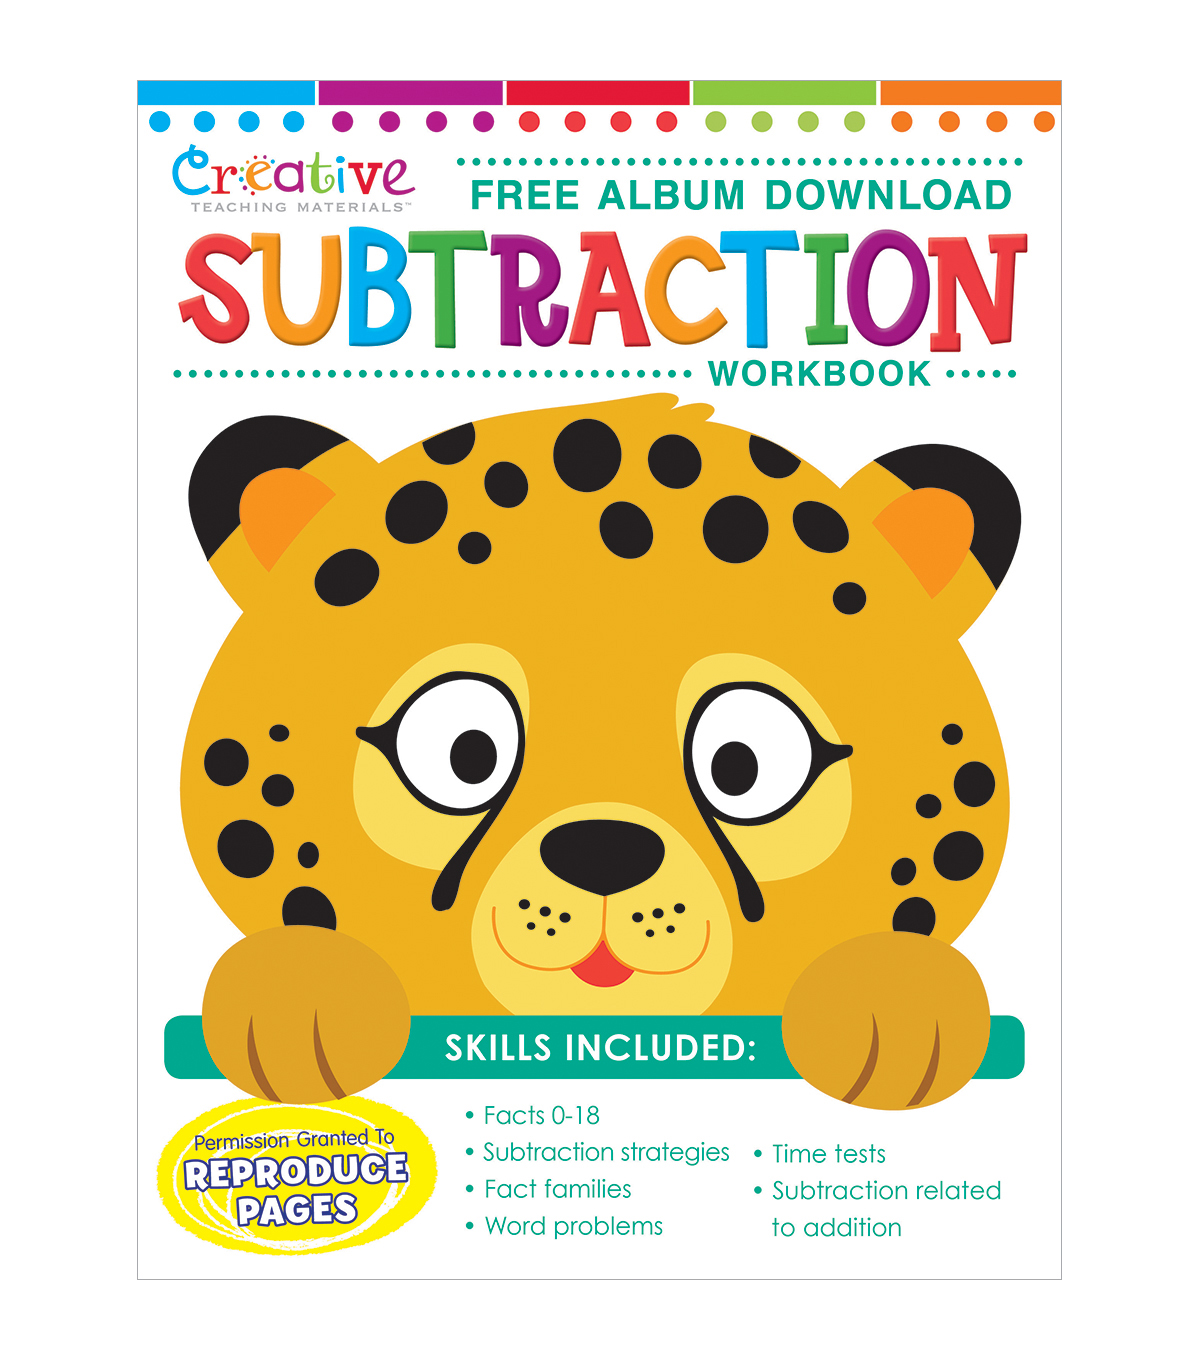 Creative Teaching Materials Workbook-Subtraction